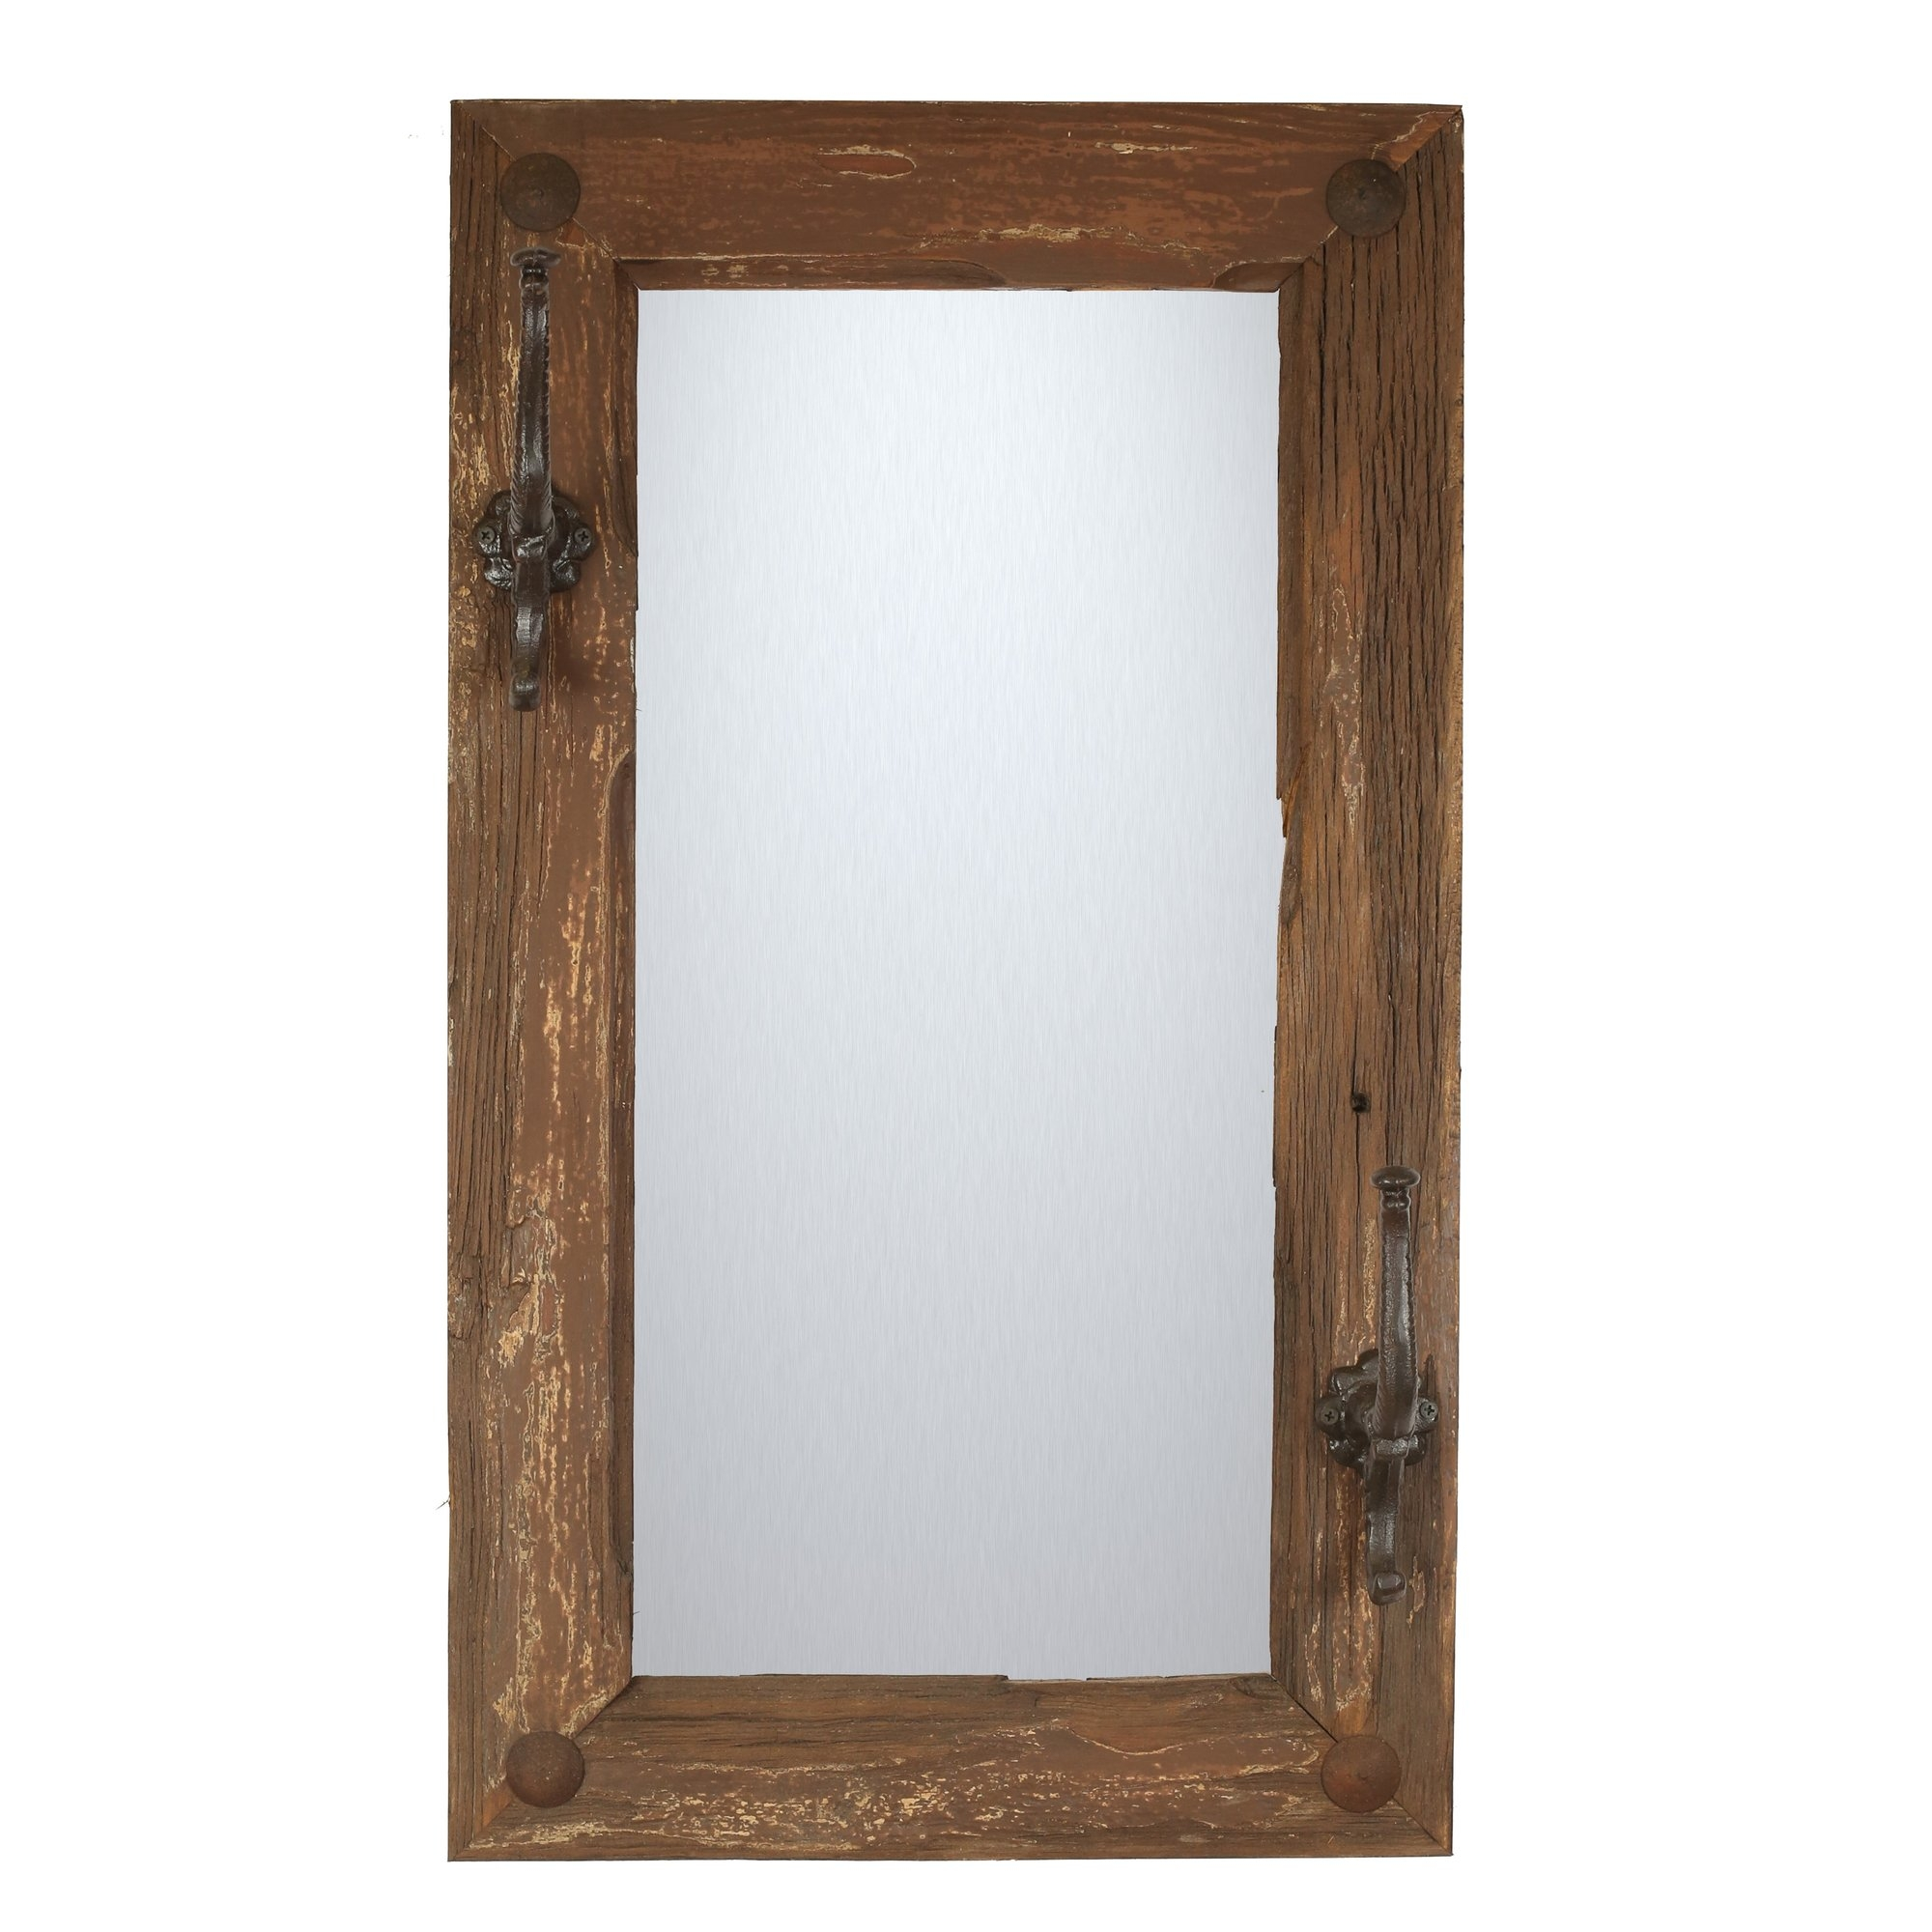 Rustic Wall Mirrors Youll Love Wayfair With Leather Mirrors Wall (Image 13 of 15)